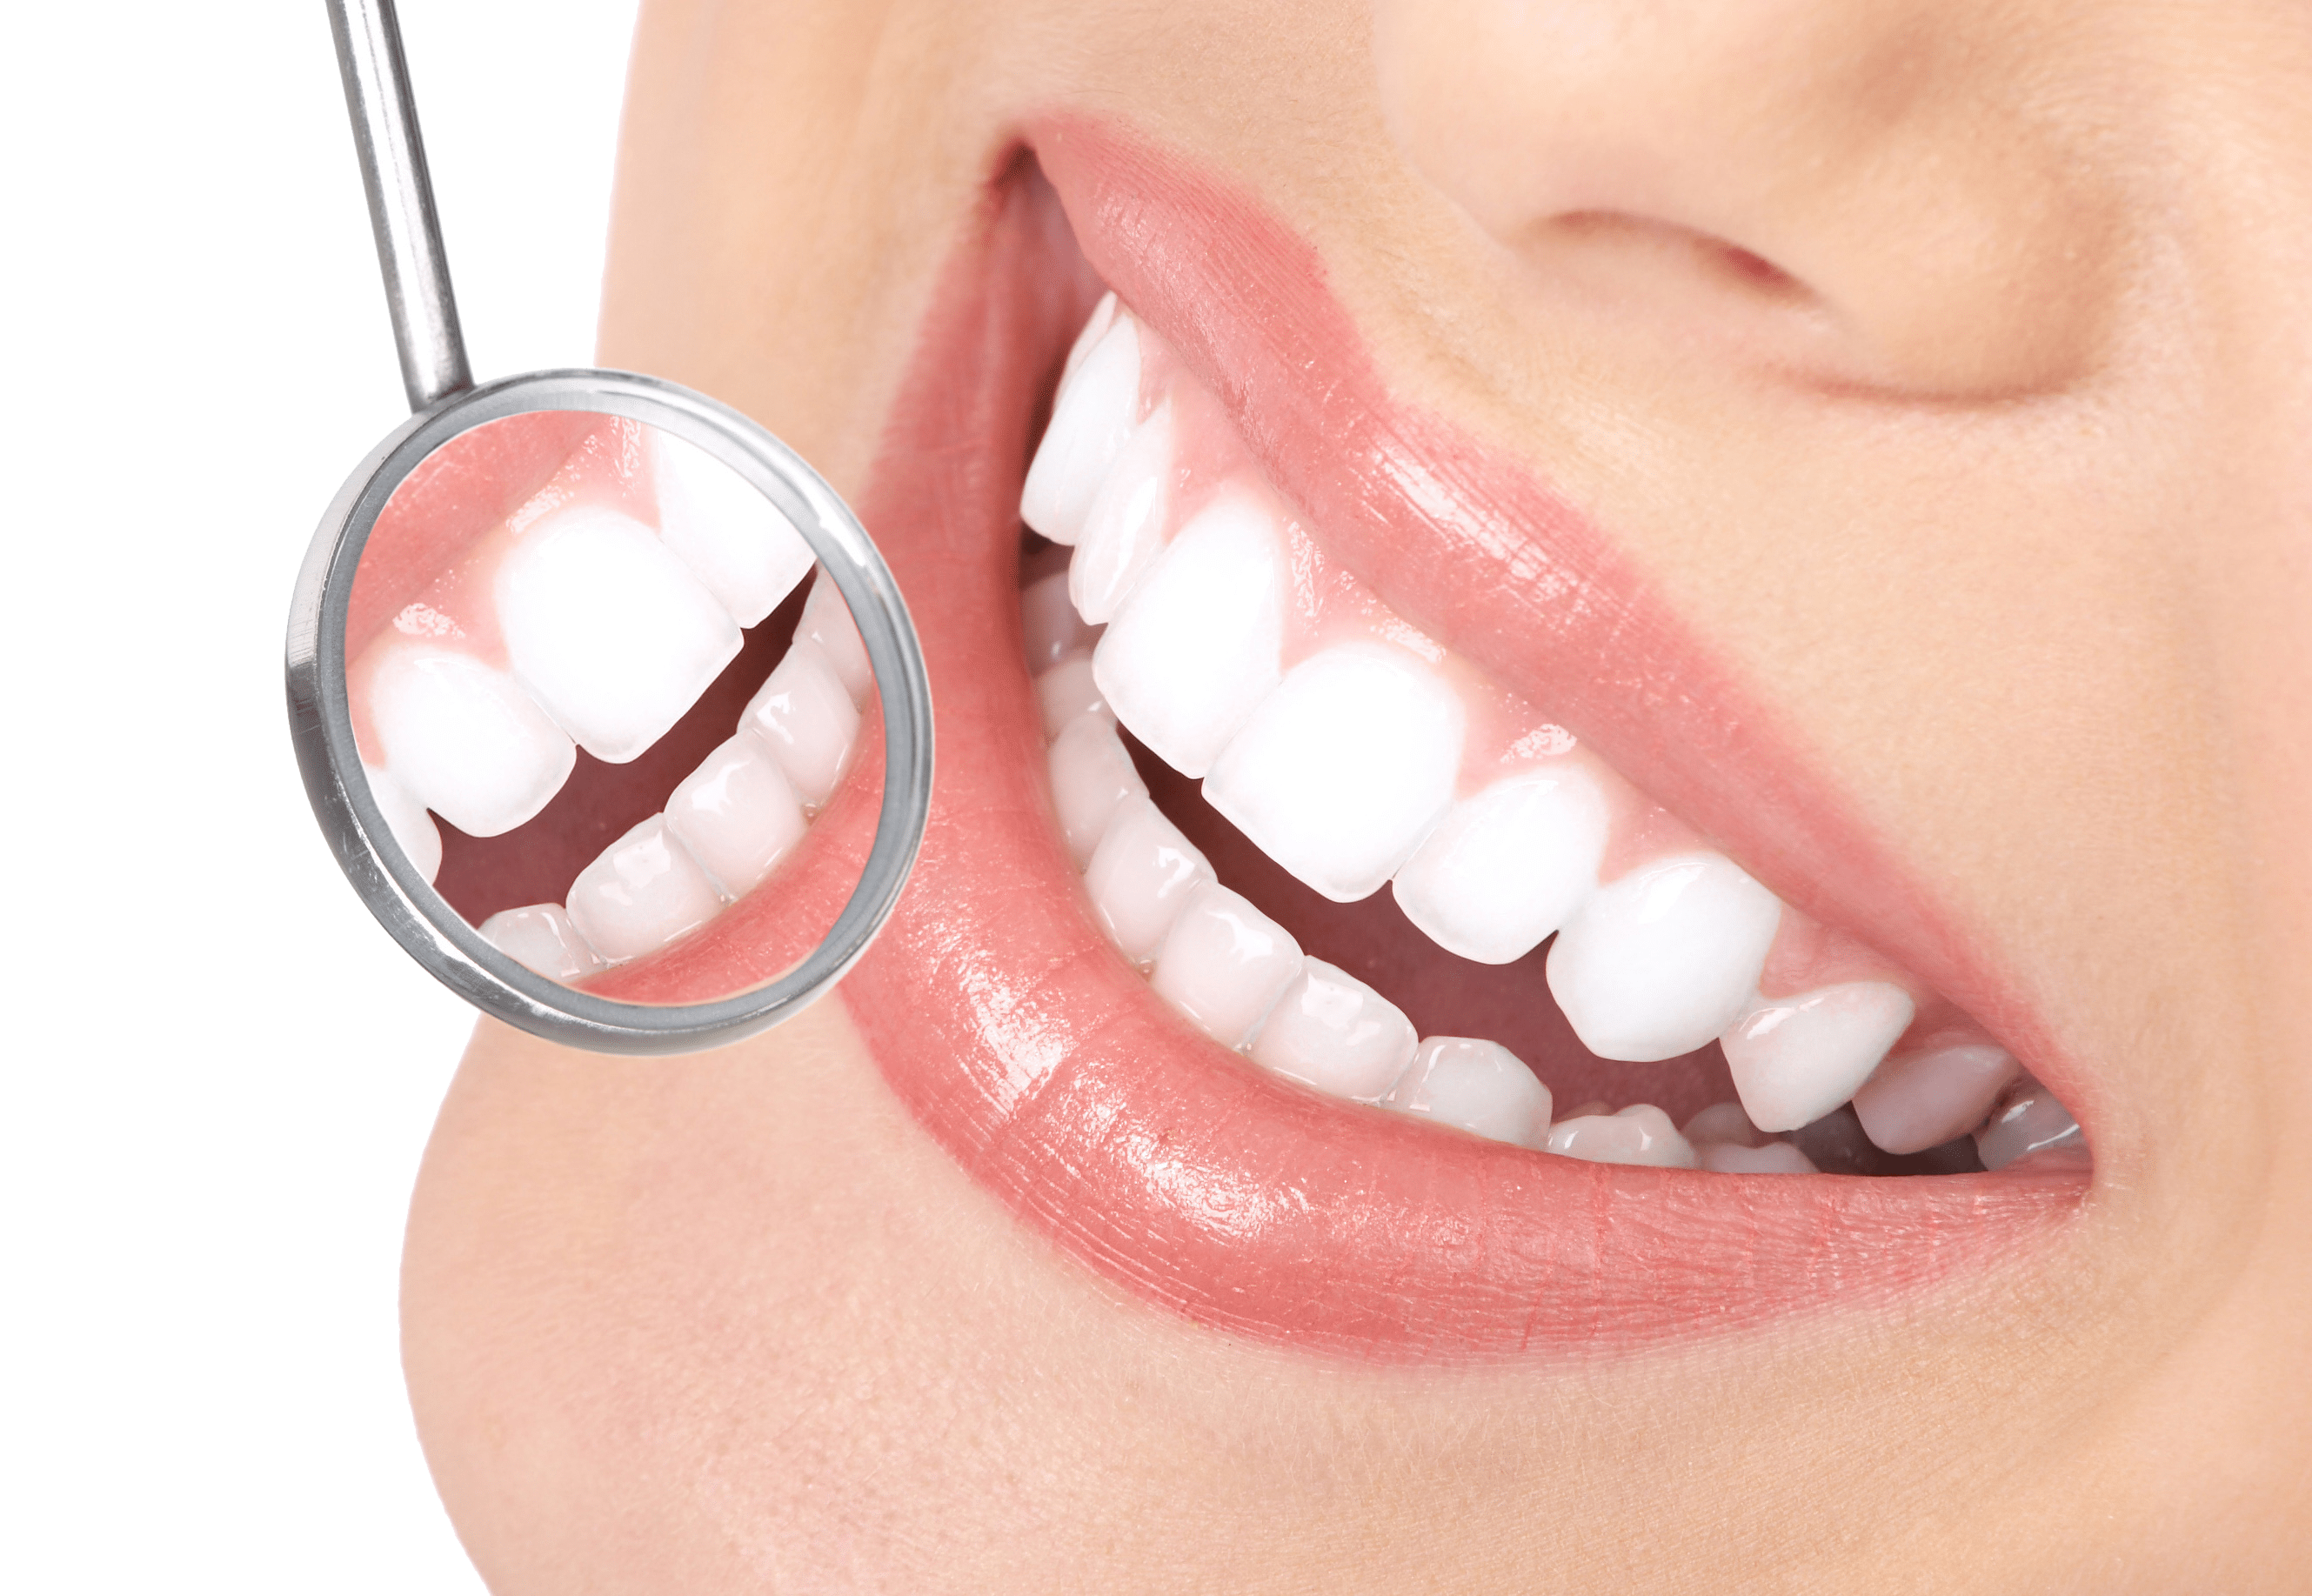 Routine Check-Up Of Your Oral Health Can Bring Great Results